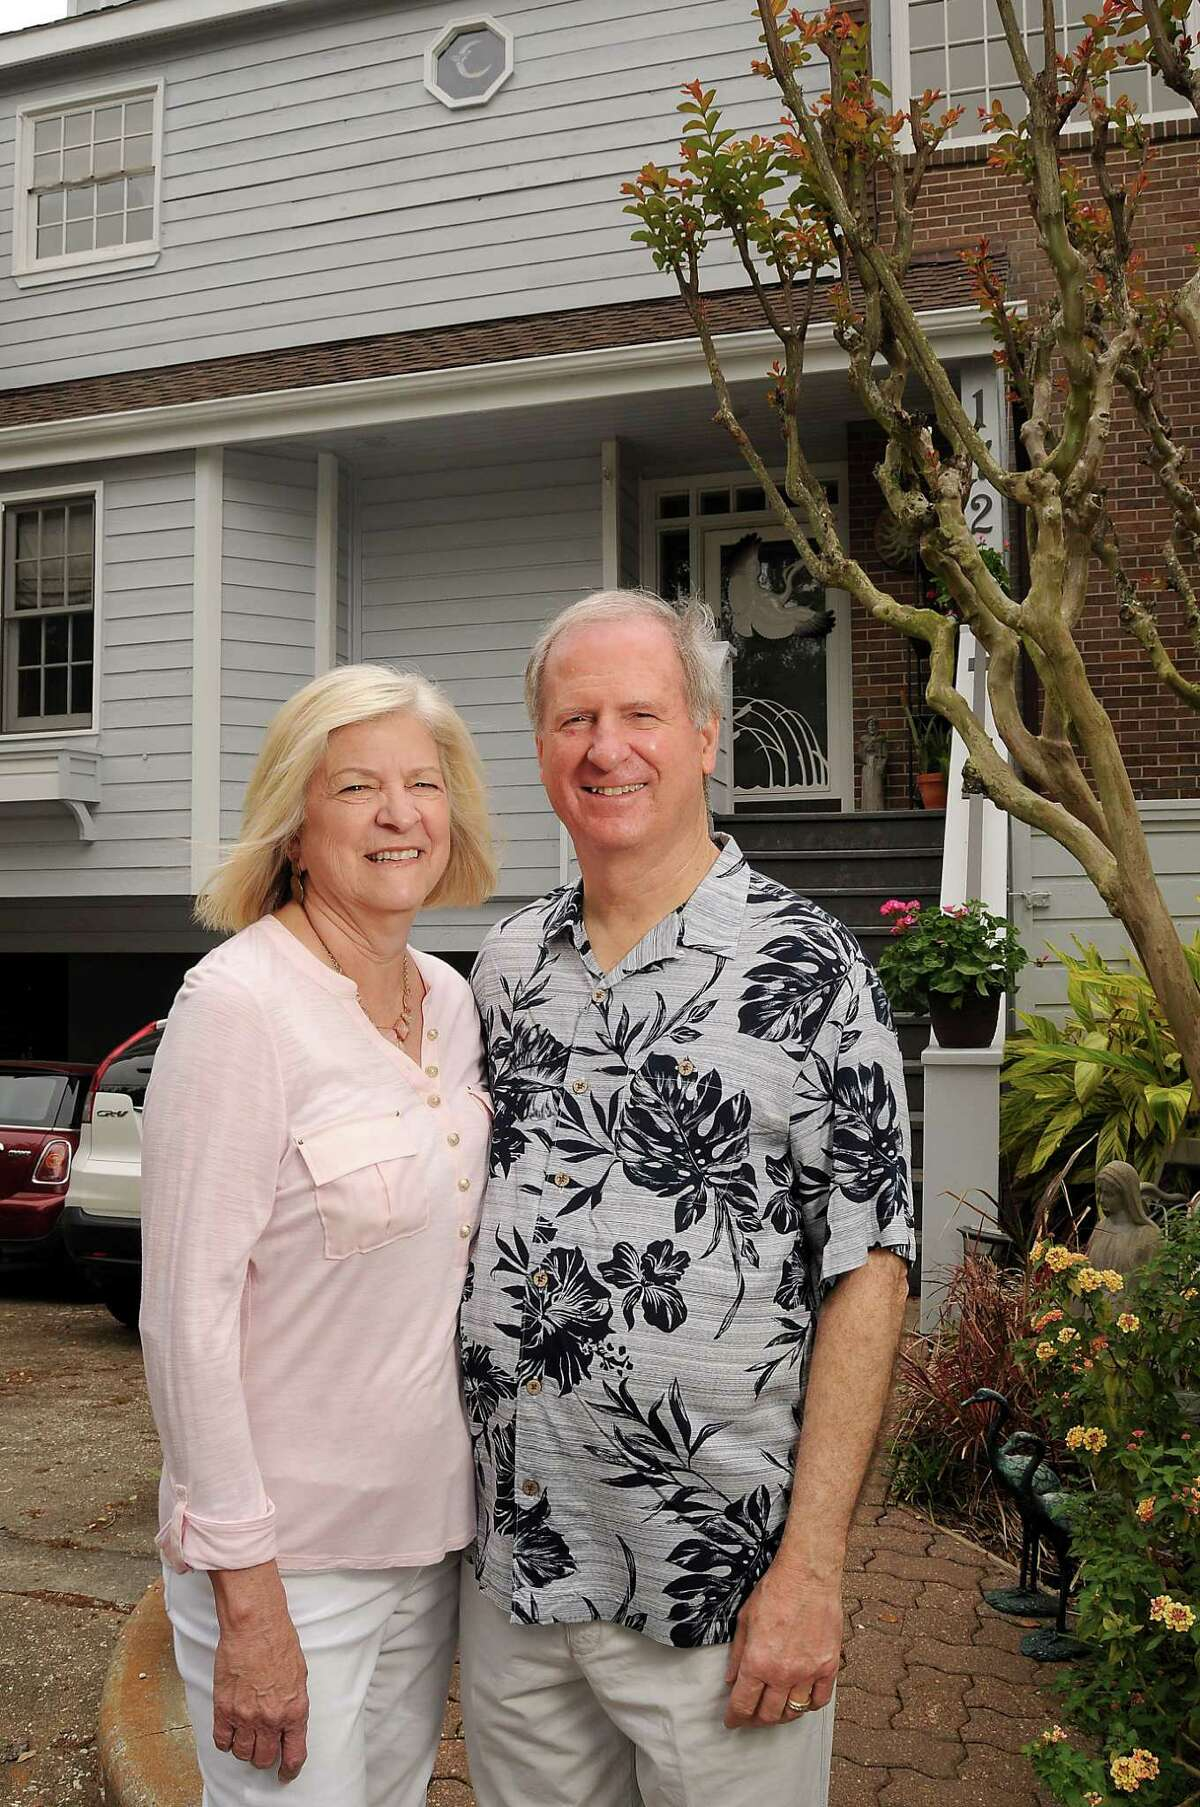 Pat and Richard Maddox in front of their new town house on Enterprise Ave in League City Saturday April 04, 2015.(Dave Rossman photo)